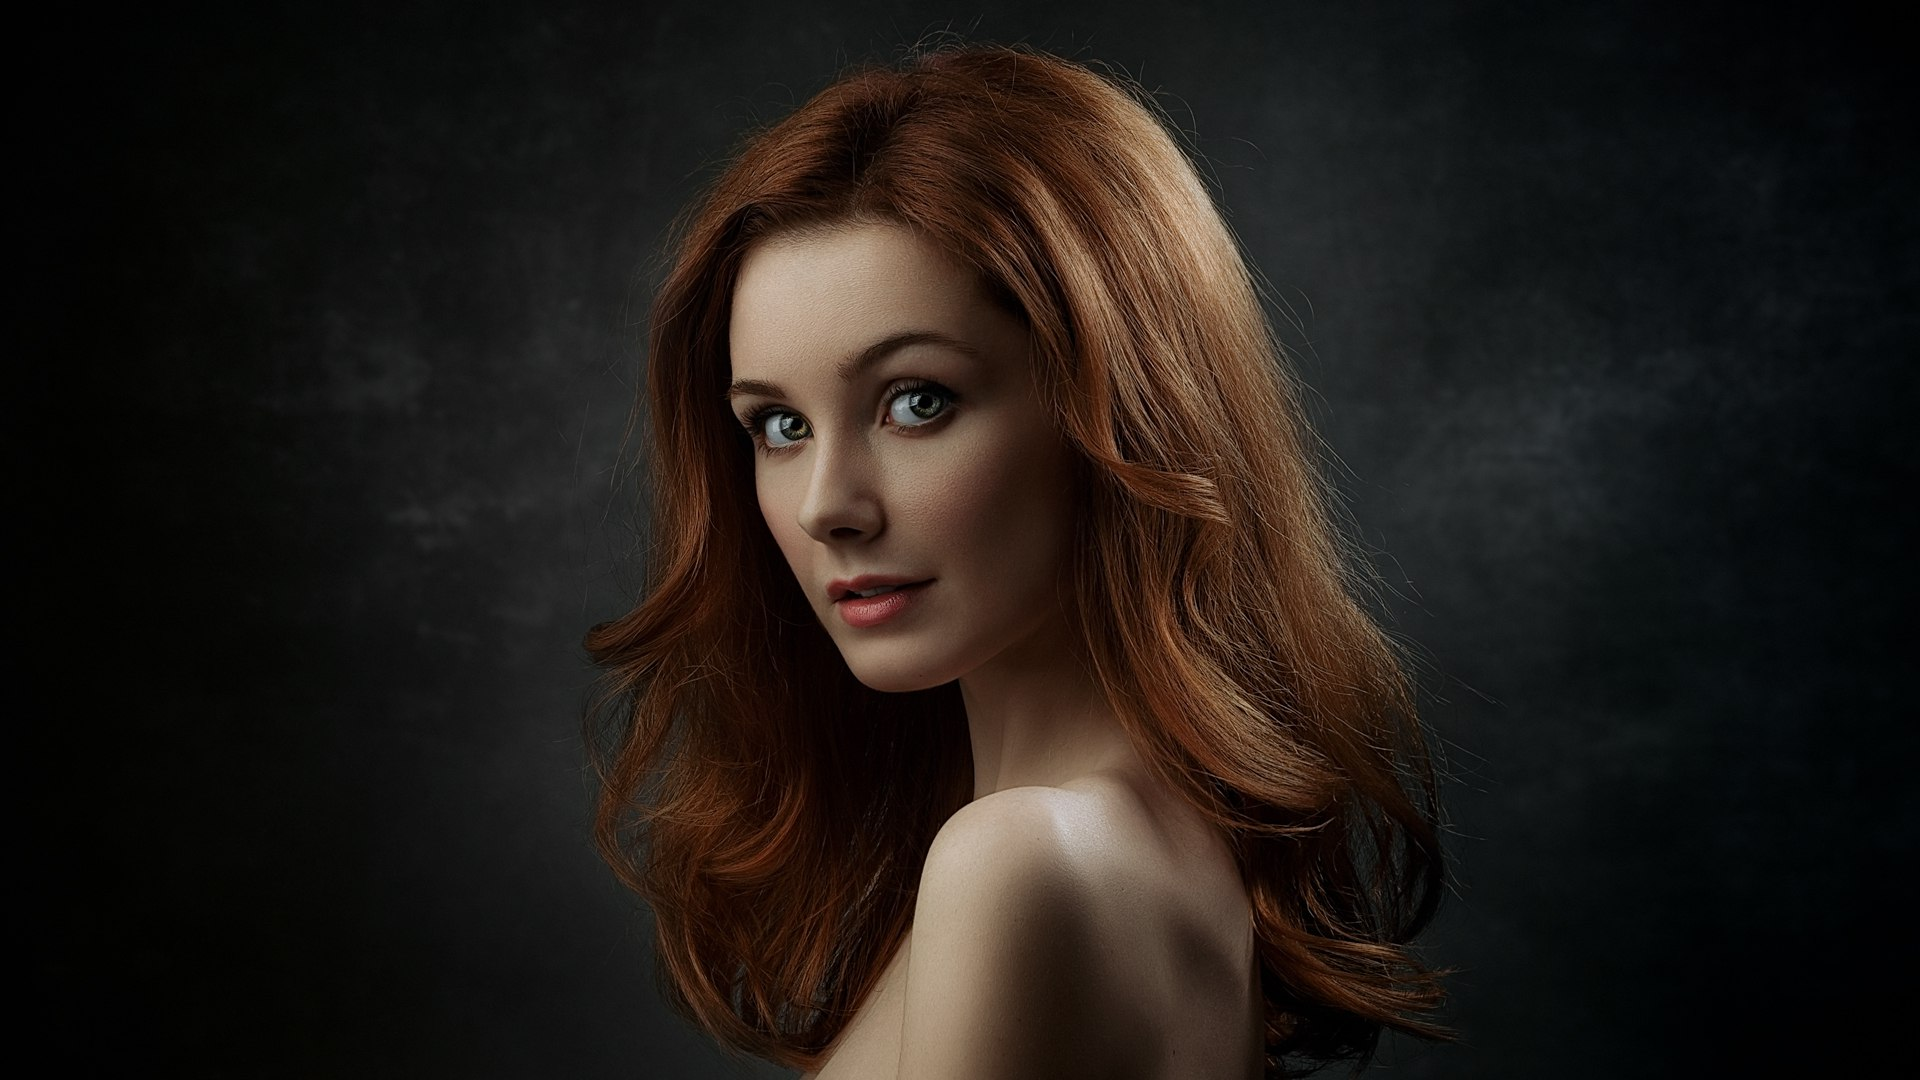 young, beauty, girl, woman, red, hair, color, eyes, emotions, portrait, light, dark, model, Гладков Степан